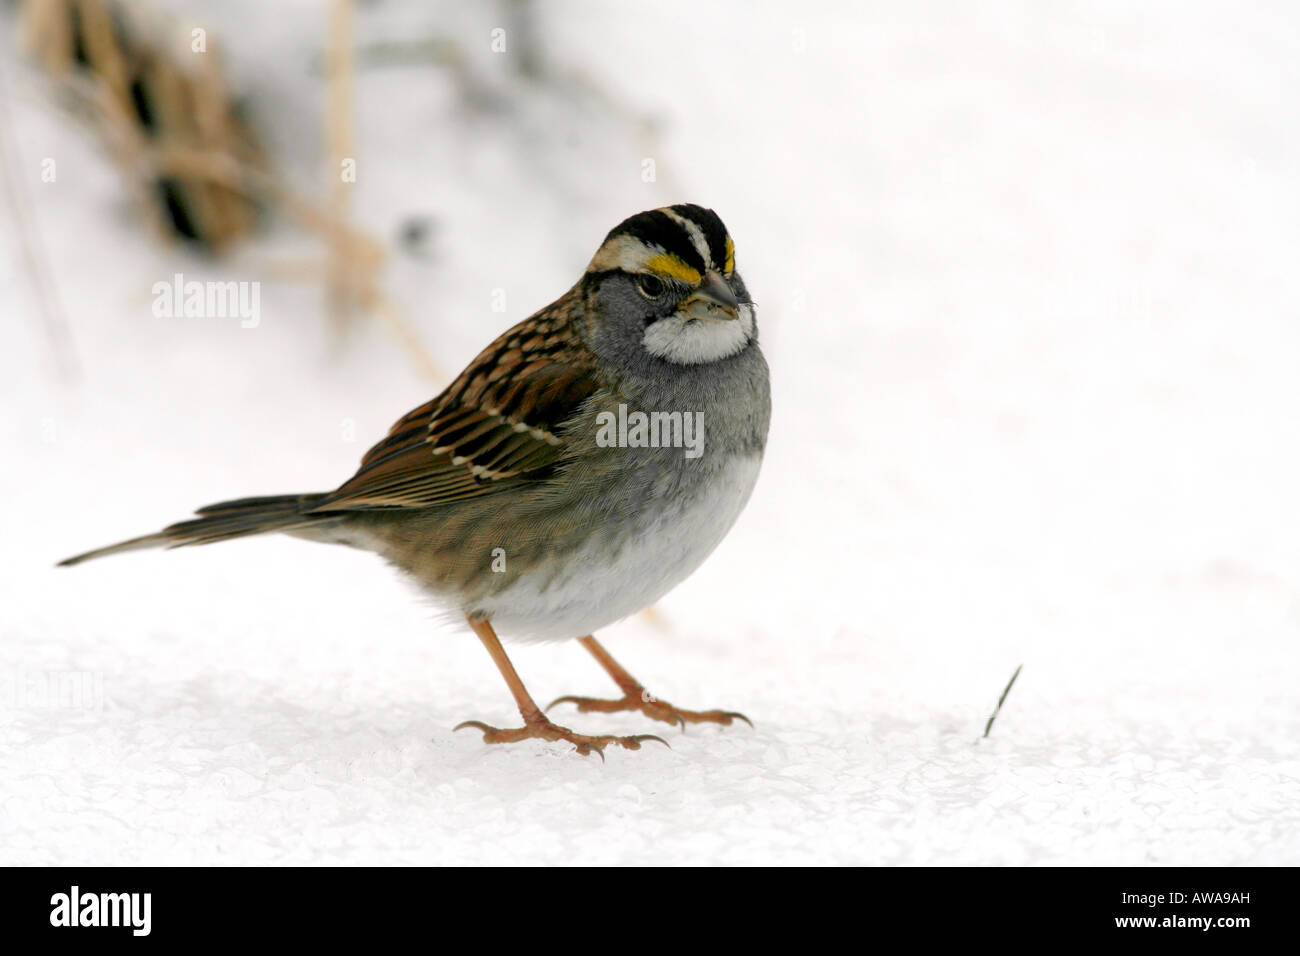 White throated Sparrow in Snow - Stock Image